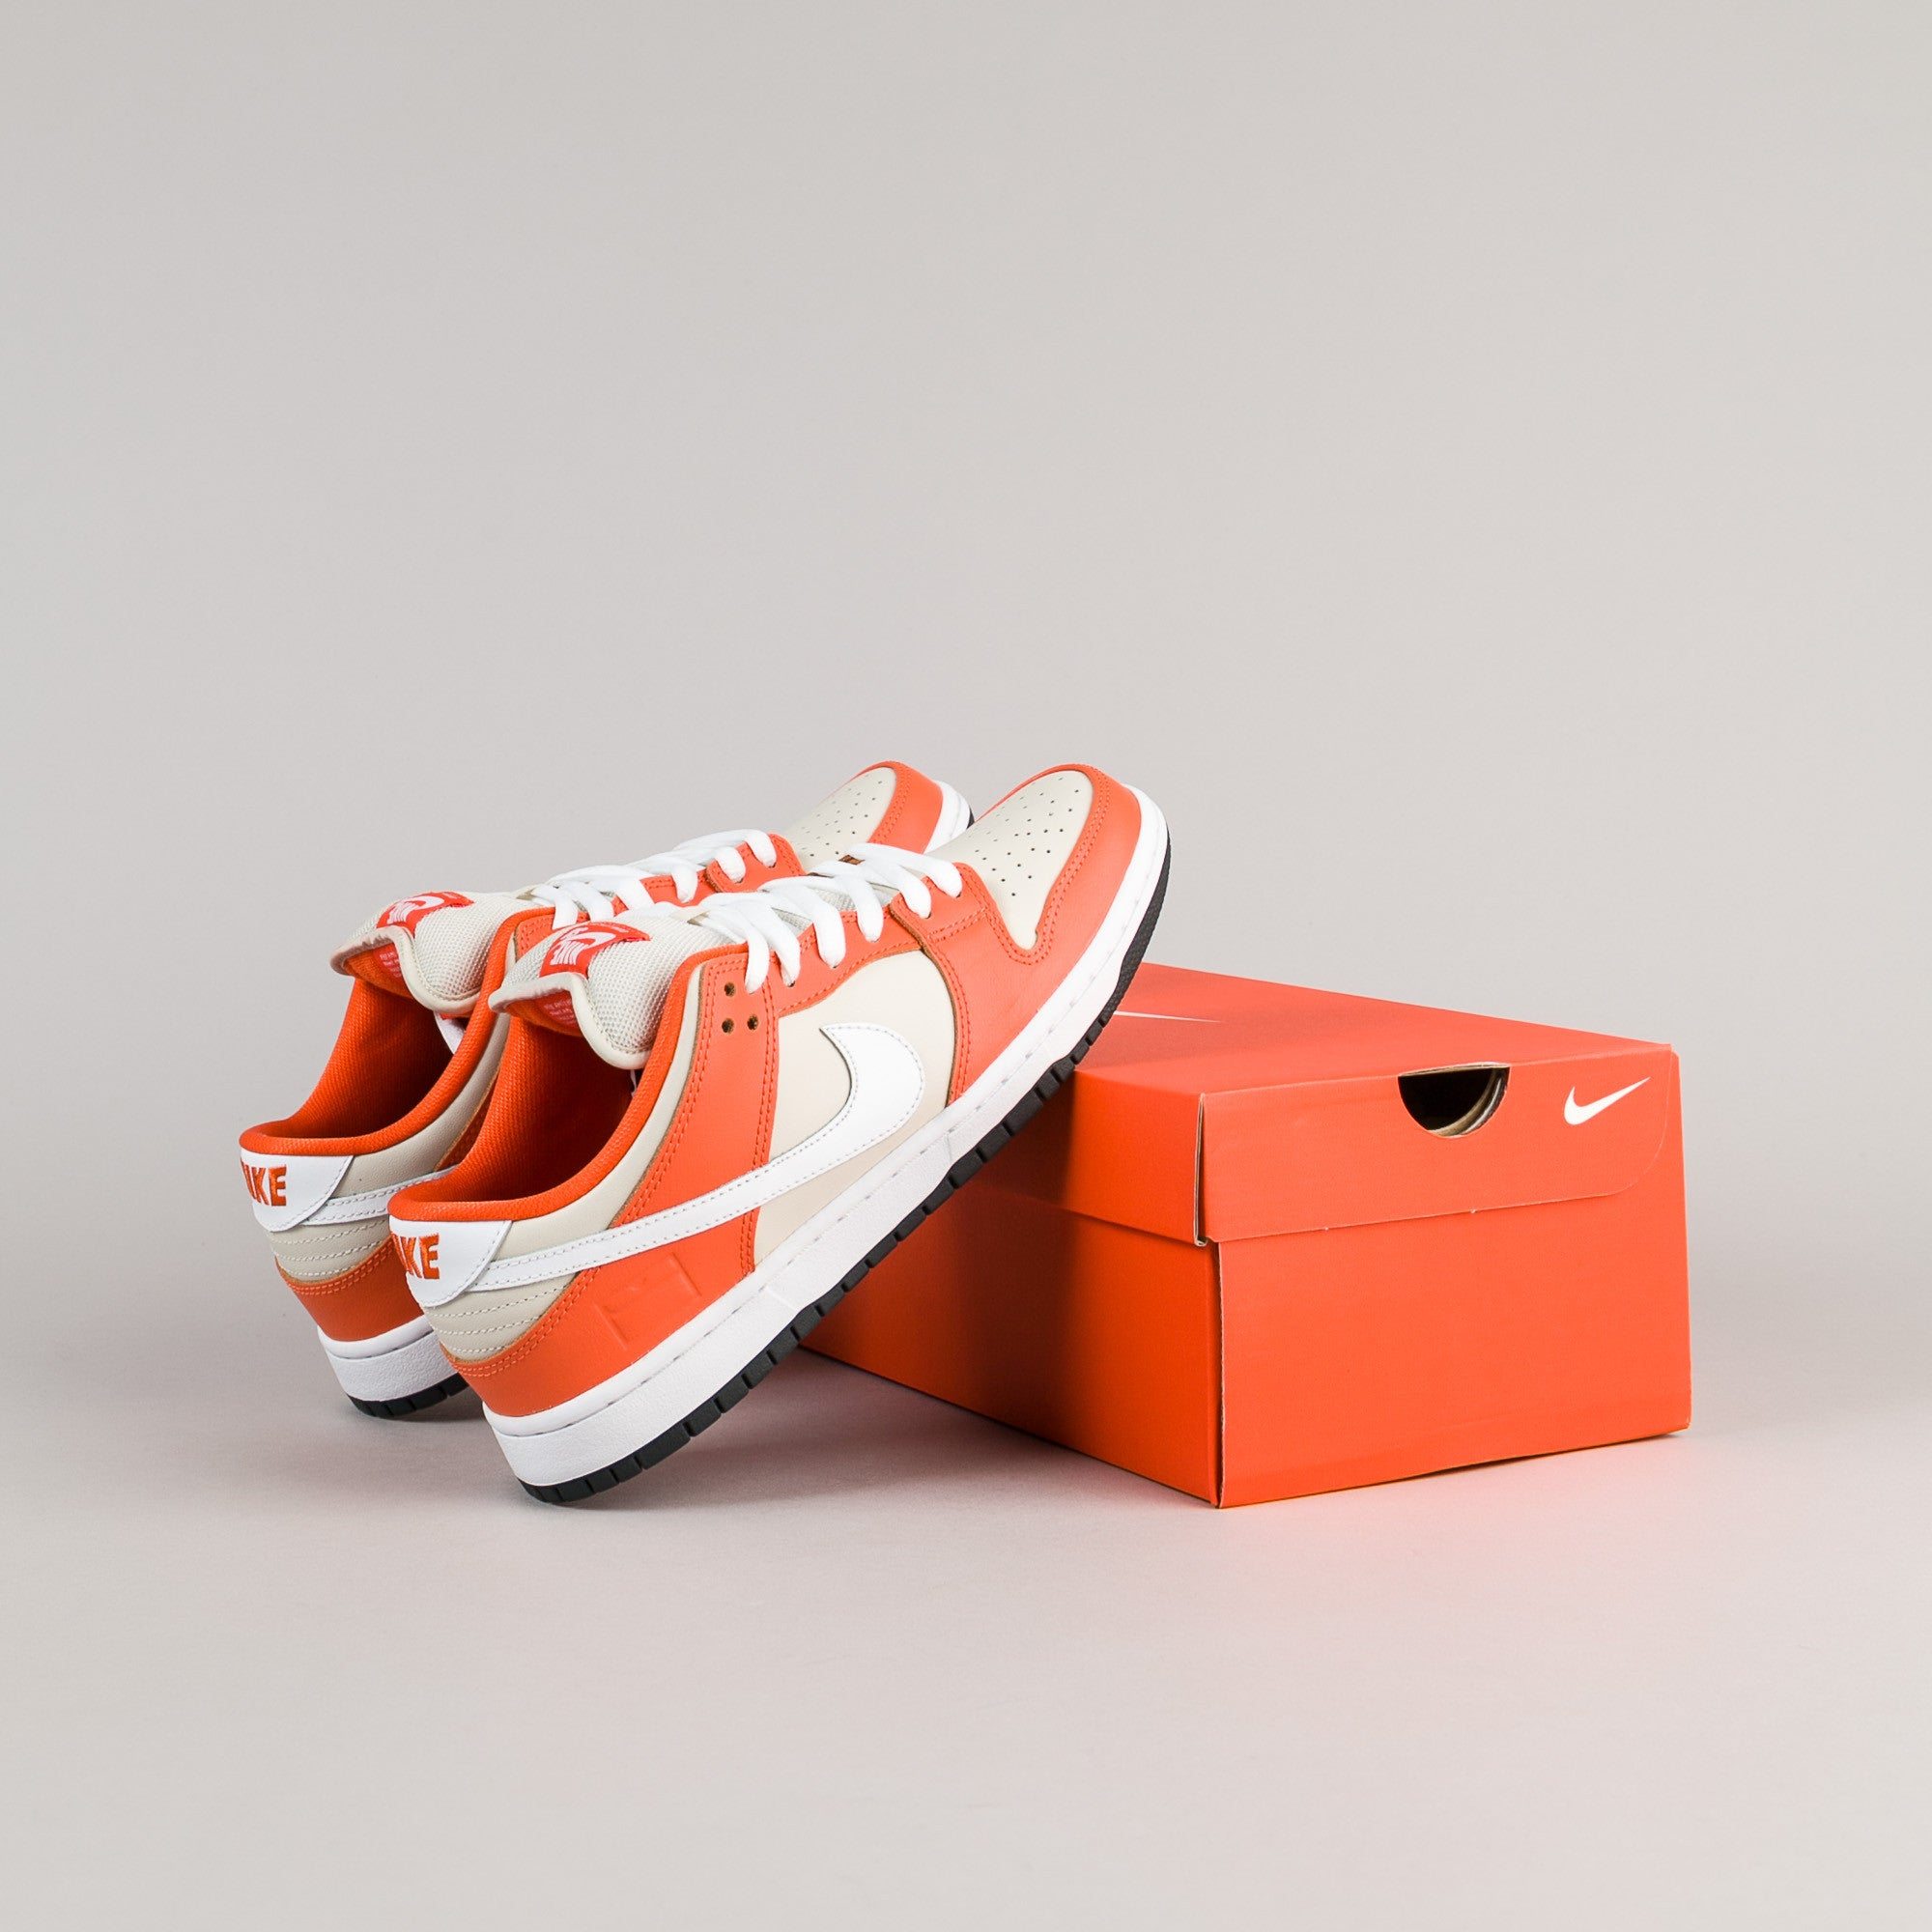 Nike SB Dunk Low Premium Shoes - Safety Orange / White - Cream